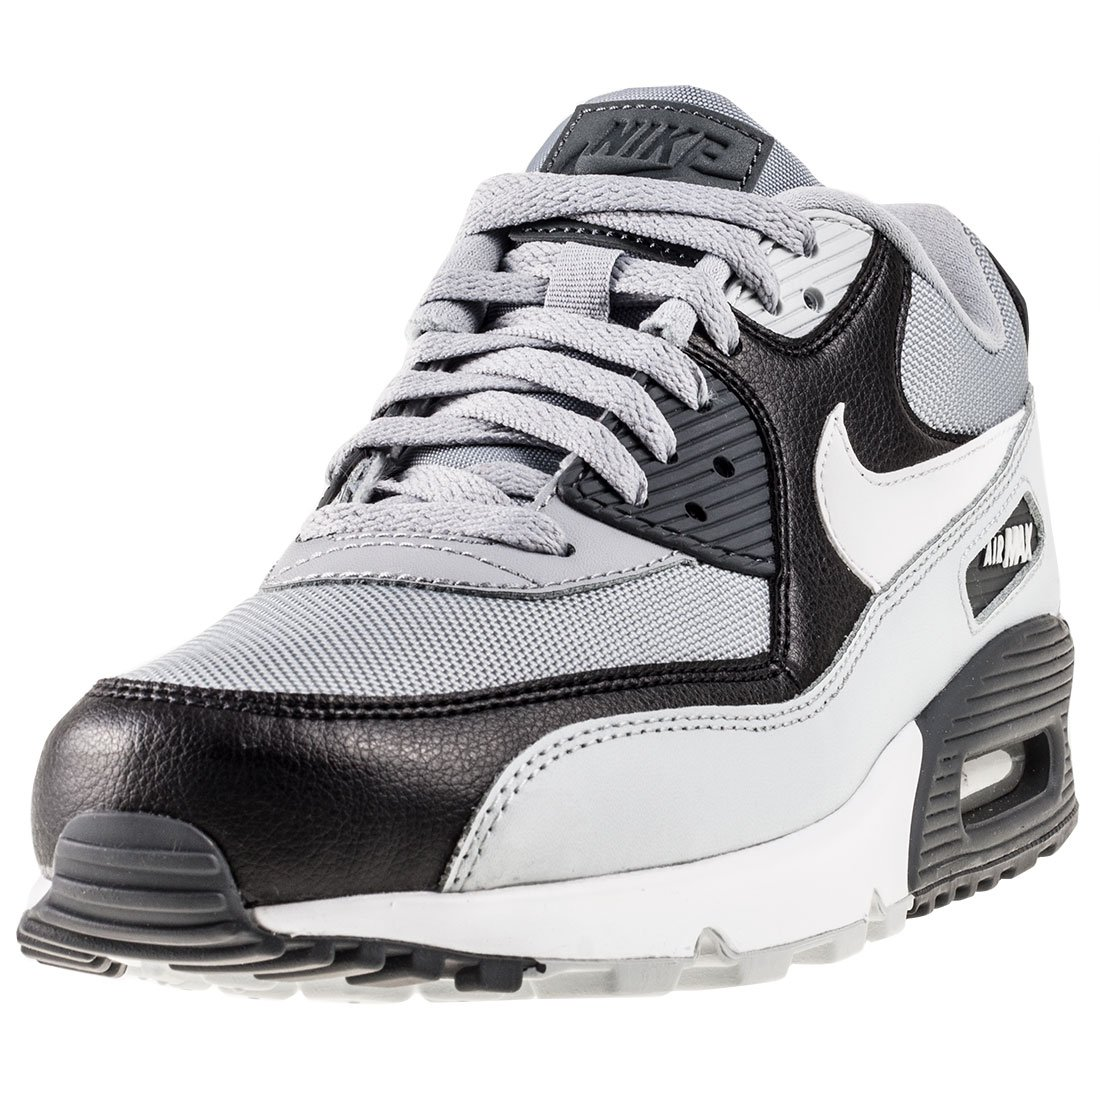 59eec8099982 Nike Air Max 90 Essential casual lifestyle sneakers sneakers sneakers wolf  grey white-purple platinum NEW 537384-083 - 12 12